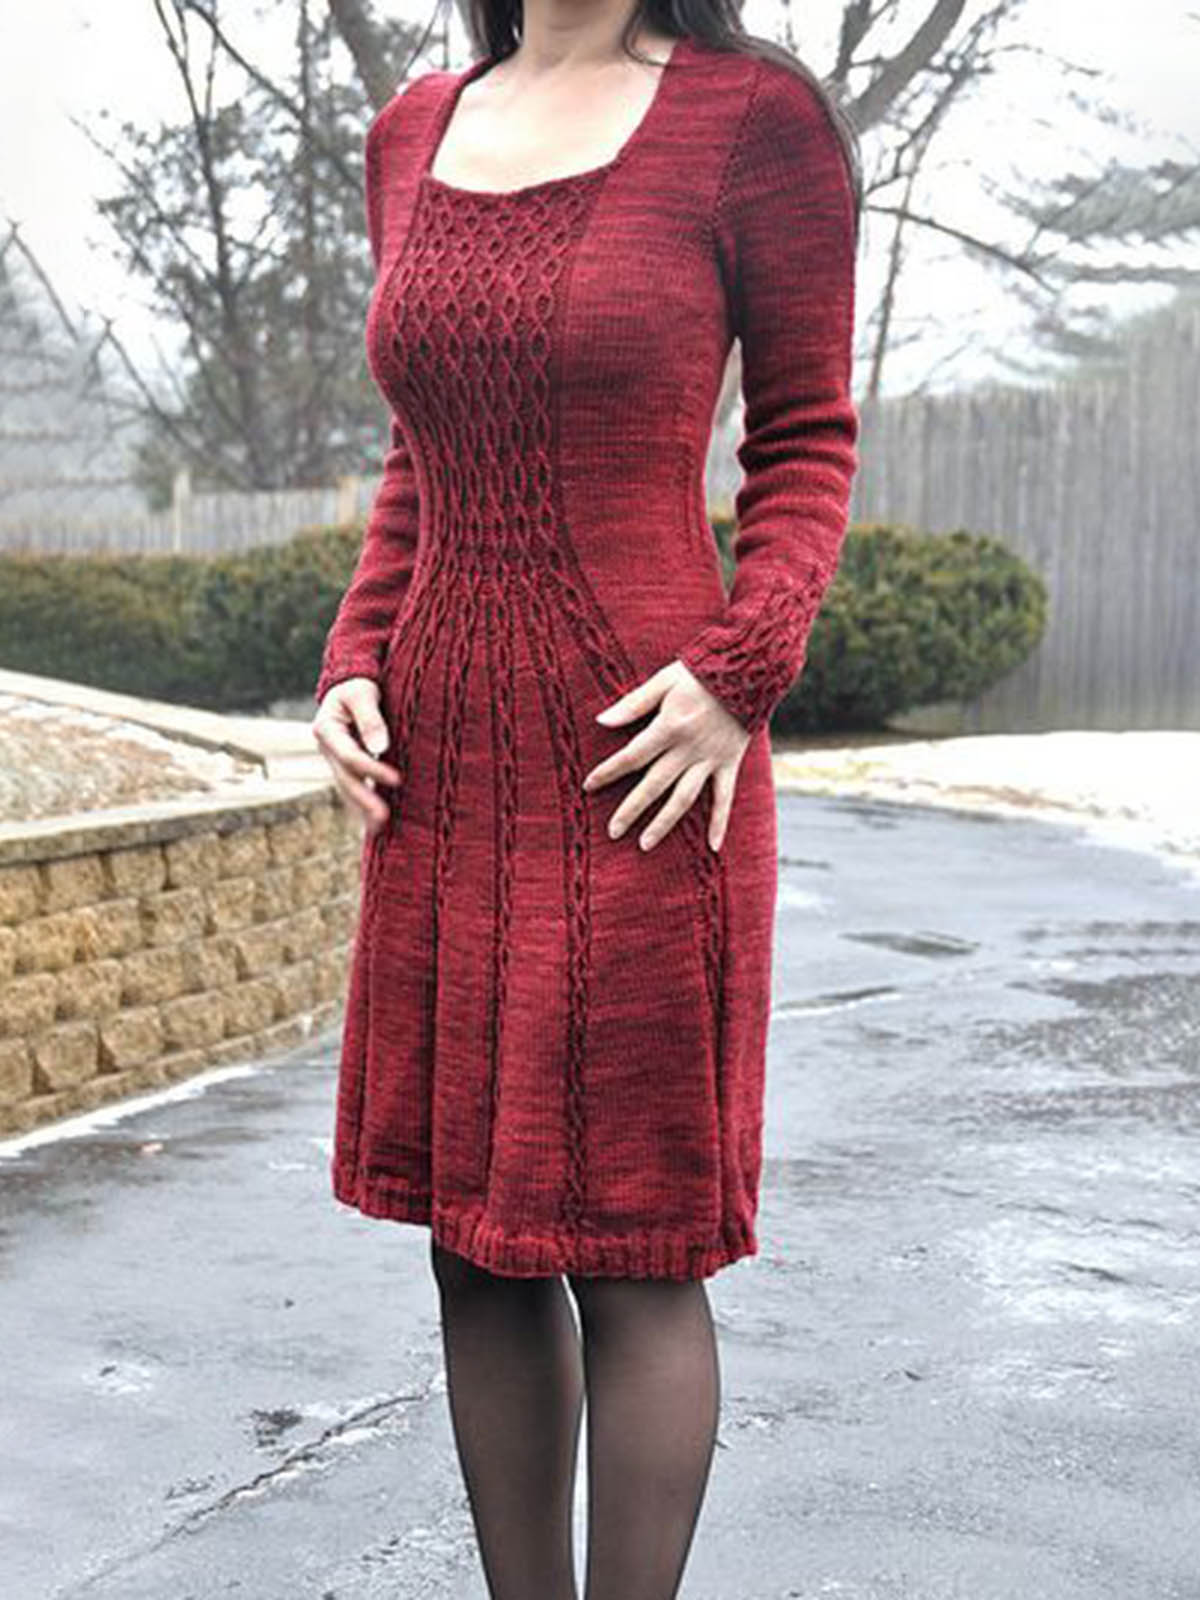 Women's knitted casual sweater dress